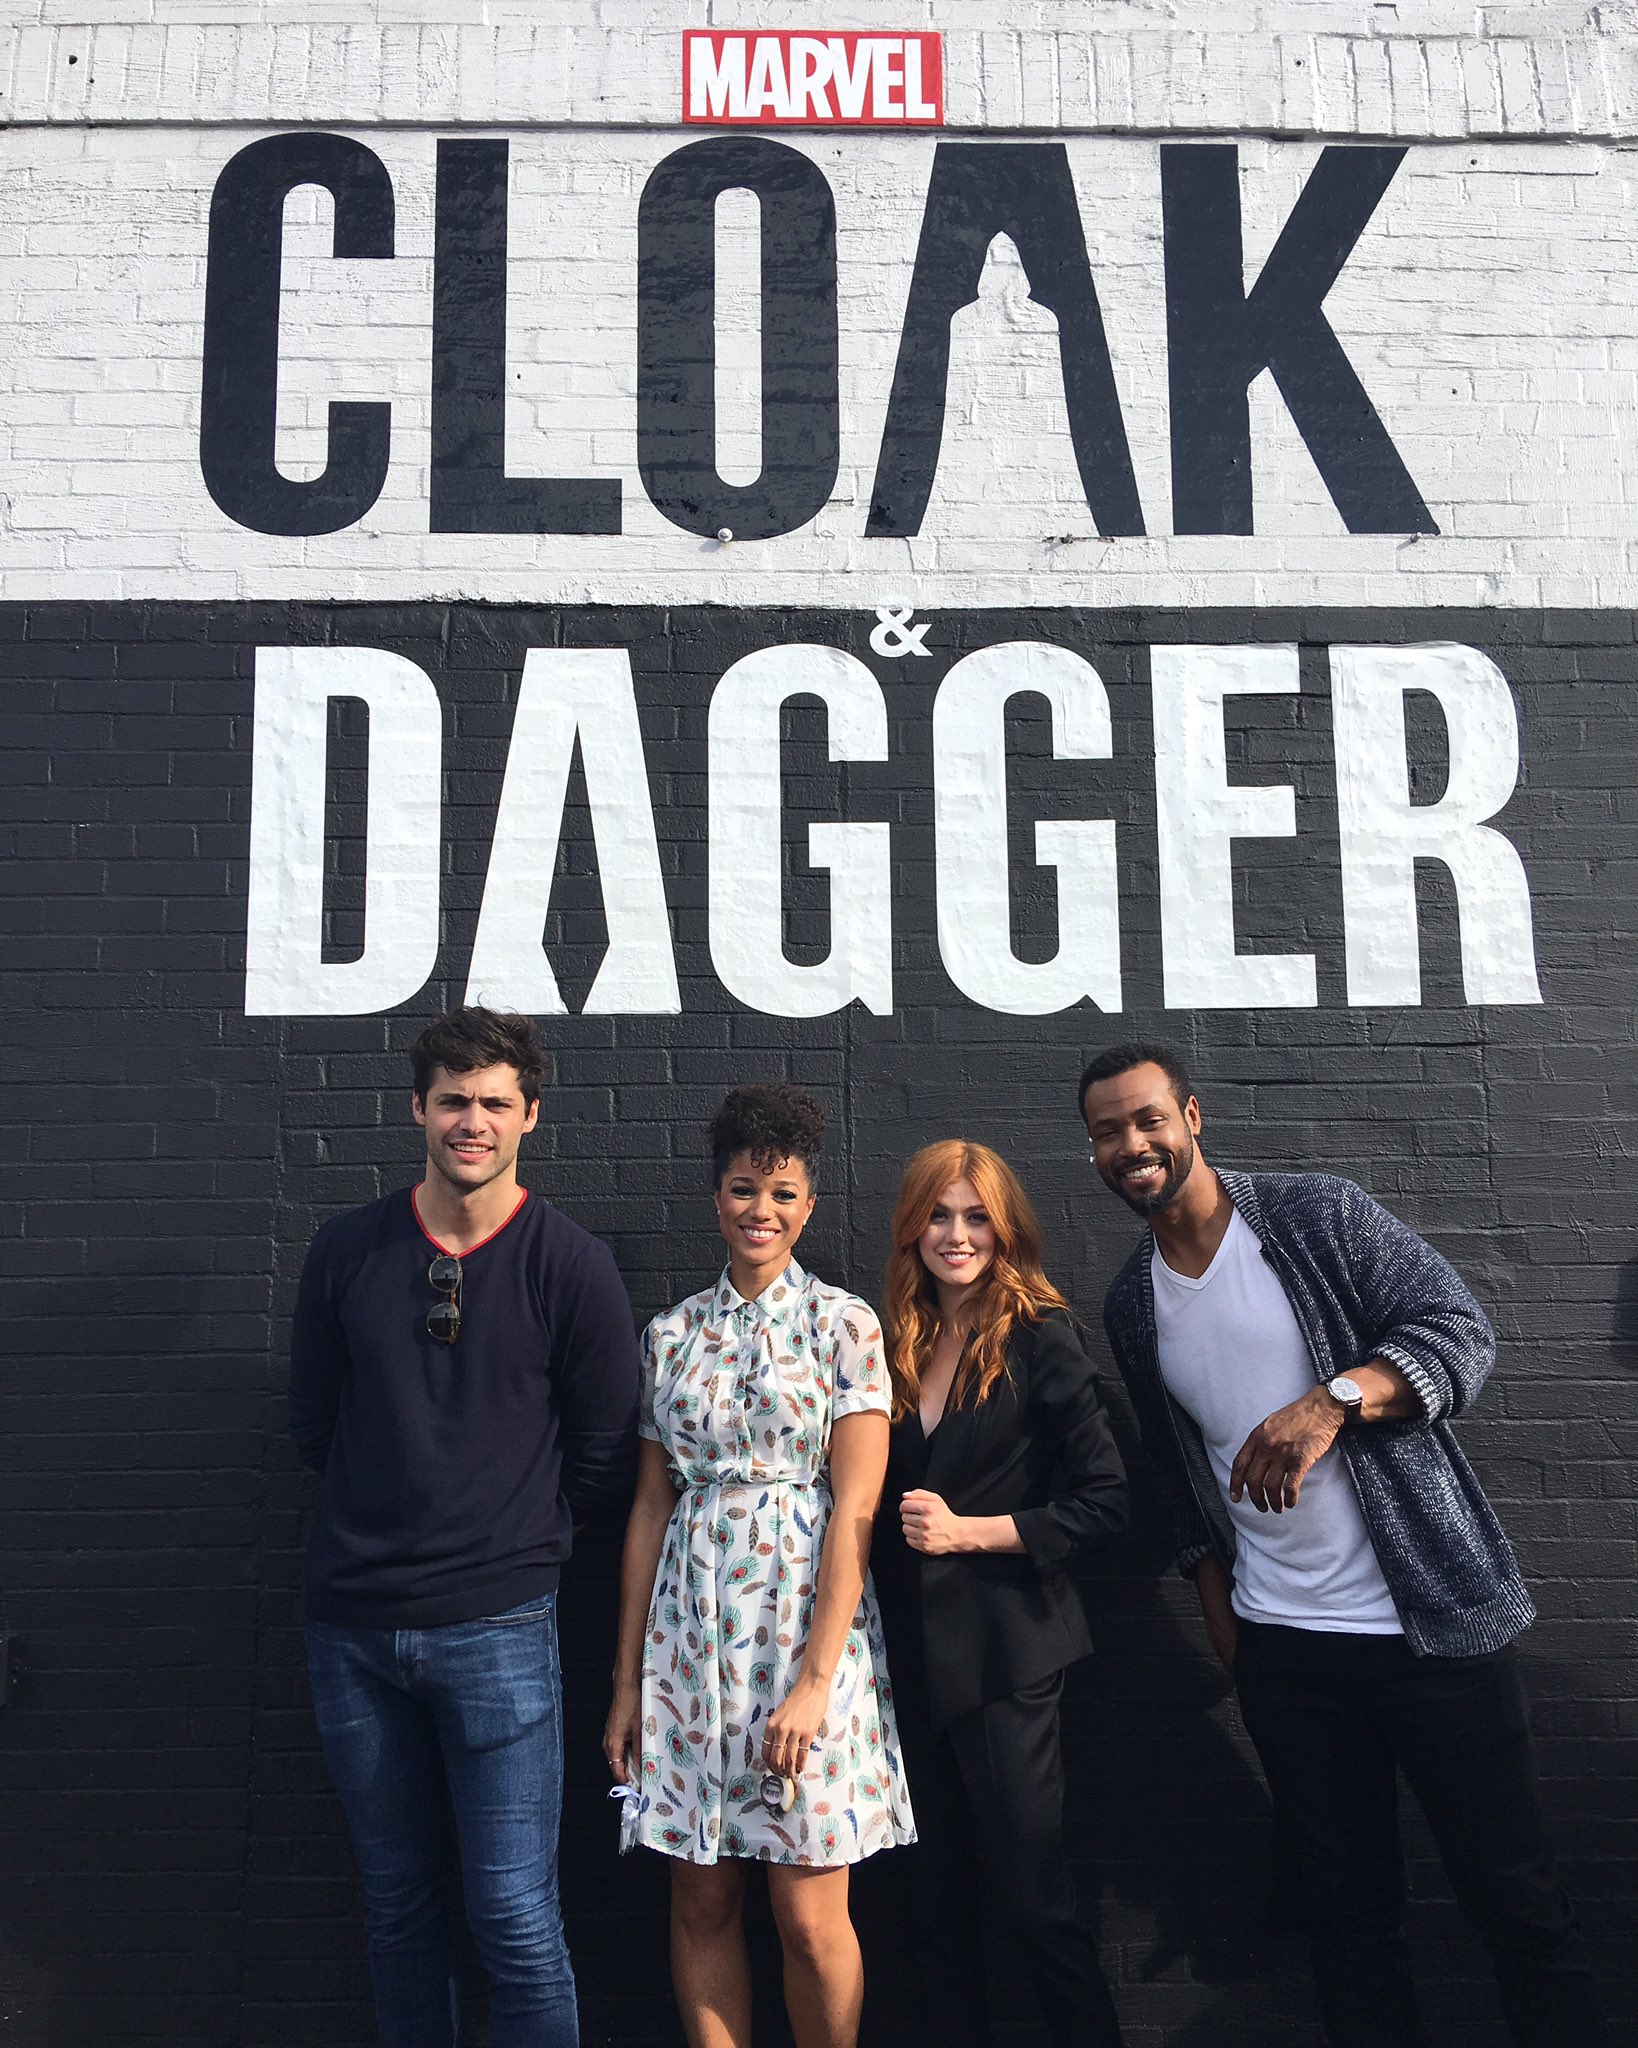 What a crew. Killin' it in front of @Marvel's @CloakAndDagger wall at #NYCC. #ShadowhuntersNYCC https://t.co/2Onzo5Smex